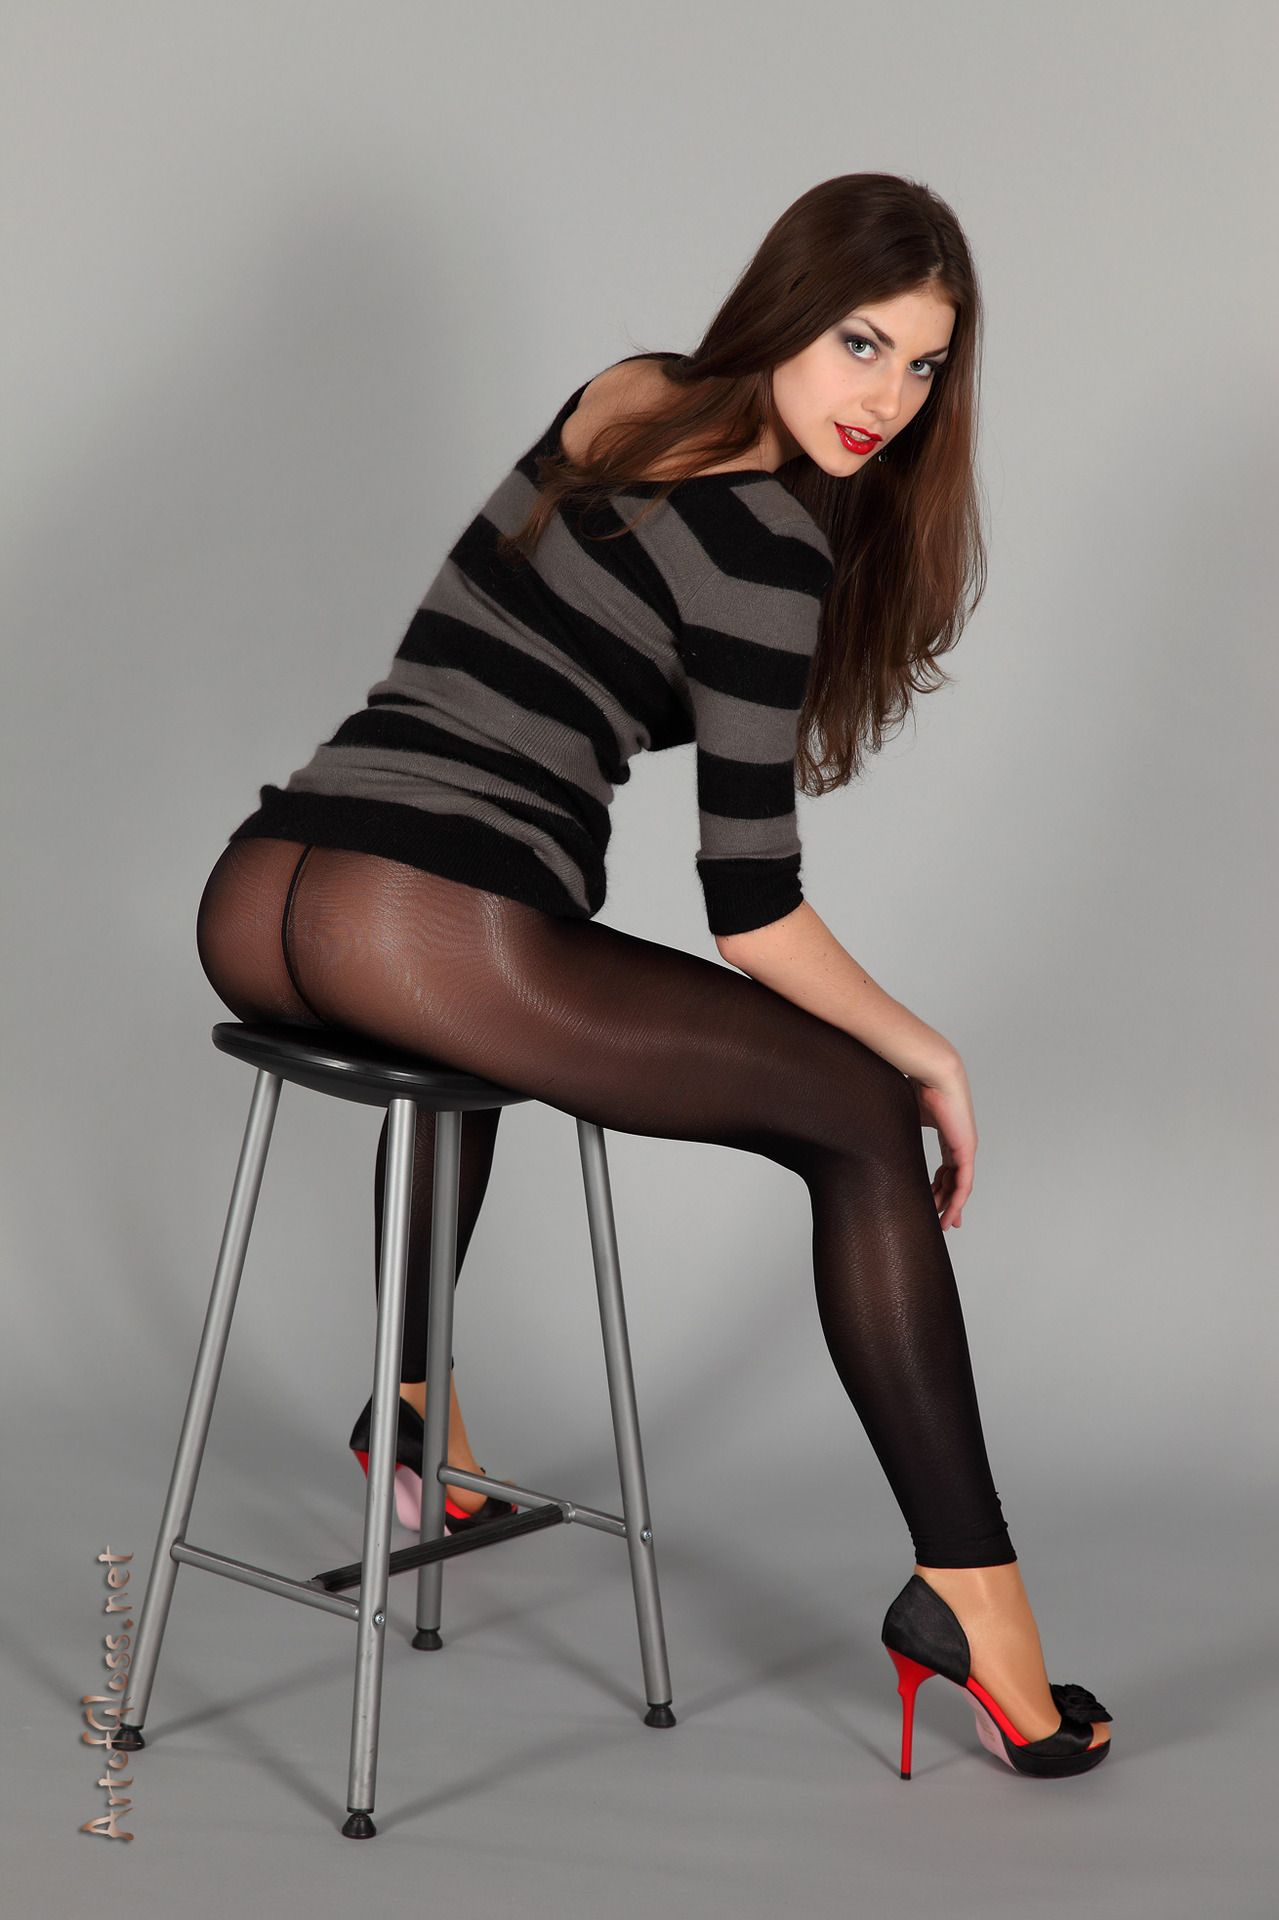 Jc penney pantyhose model — photo 1